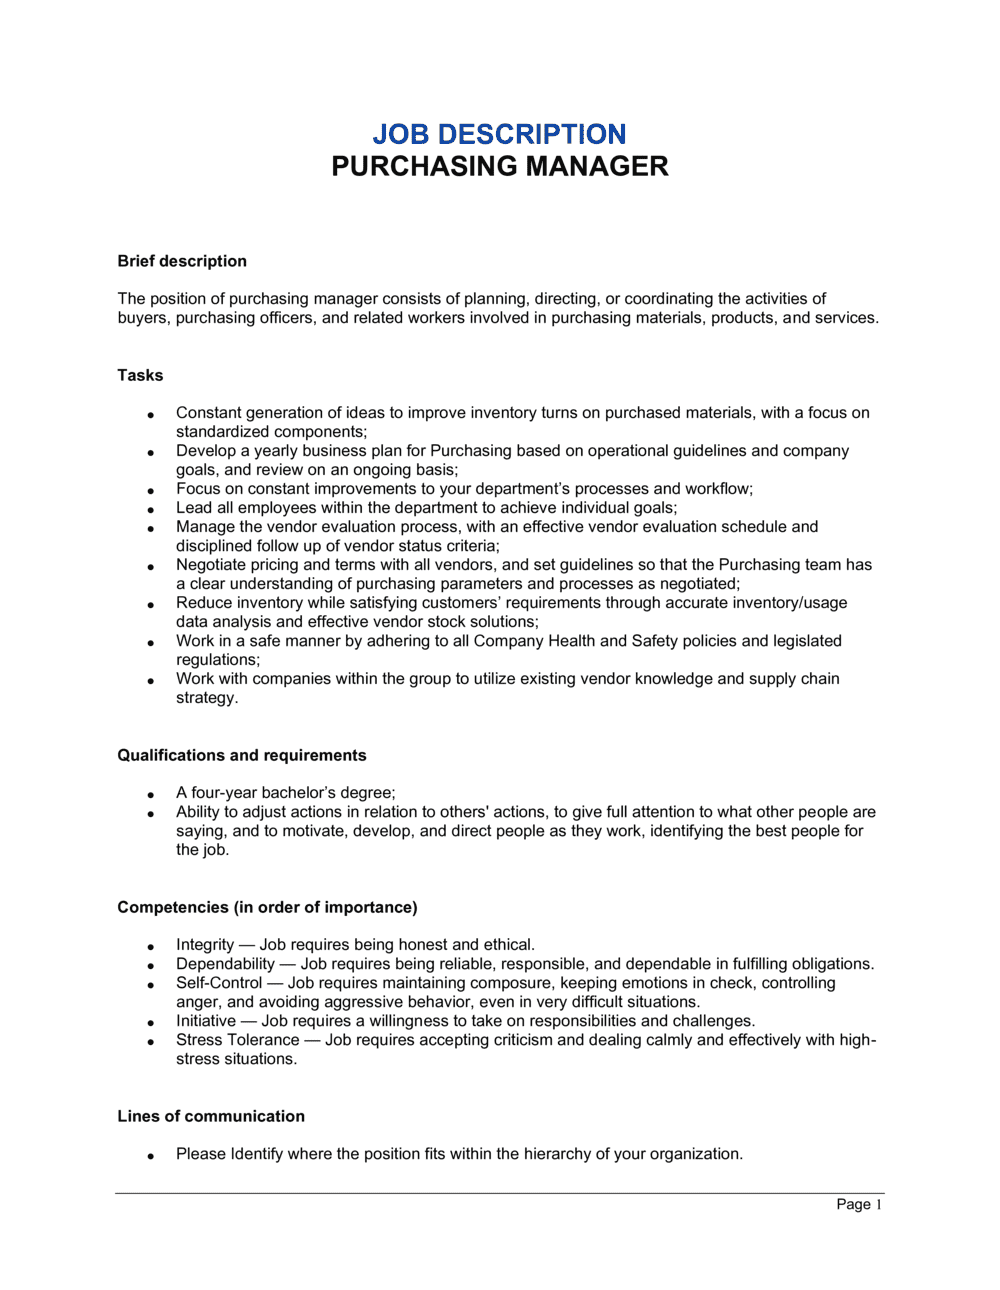 Business-in-a-Box's Purchasing Manager Job Description Template